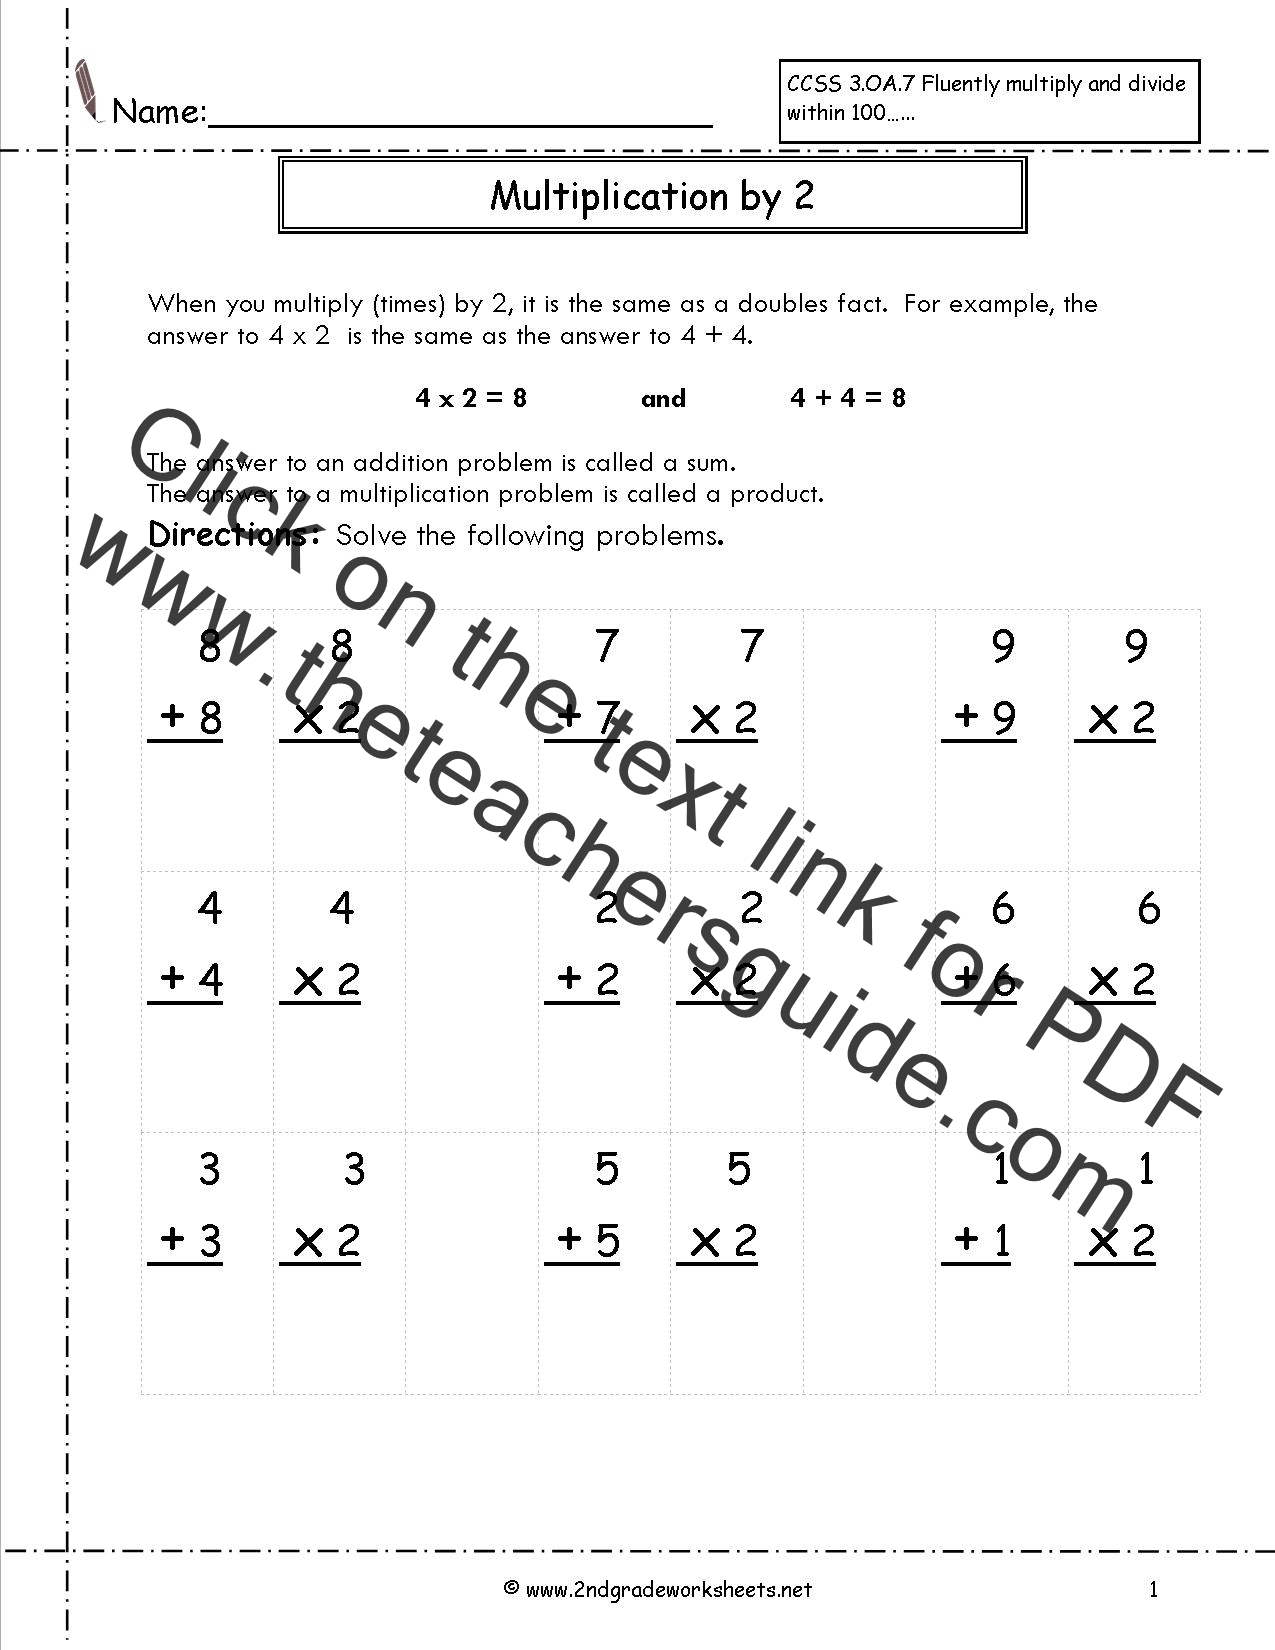 Concept Of Multiplication Worksheet For Grade 2